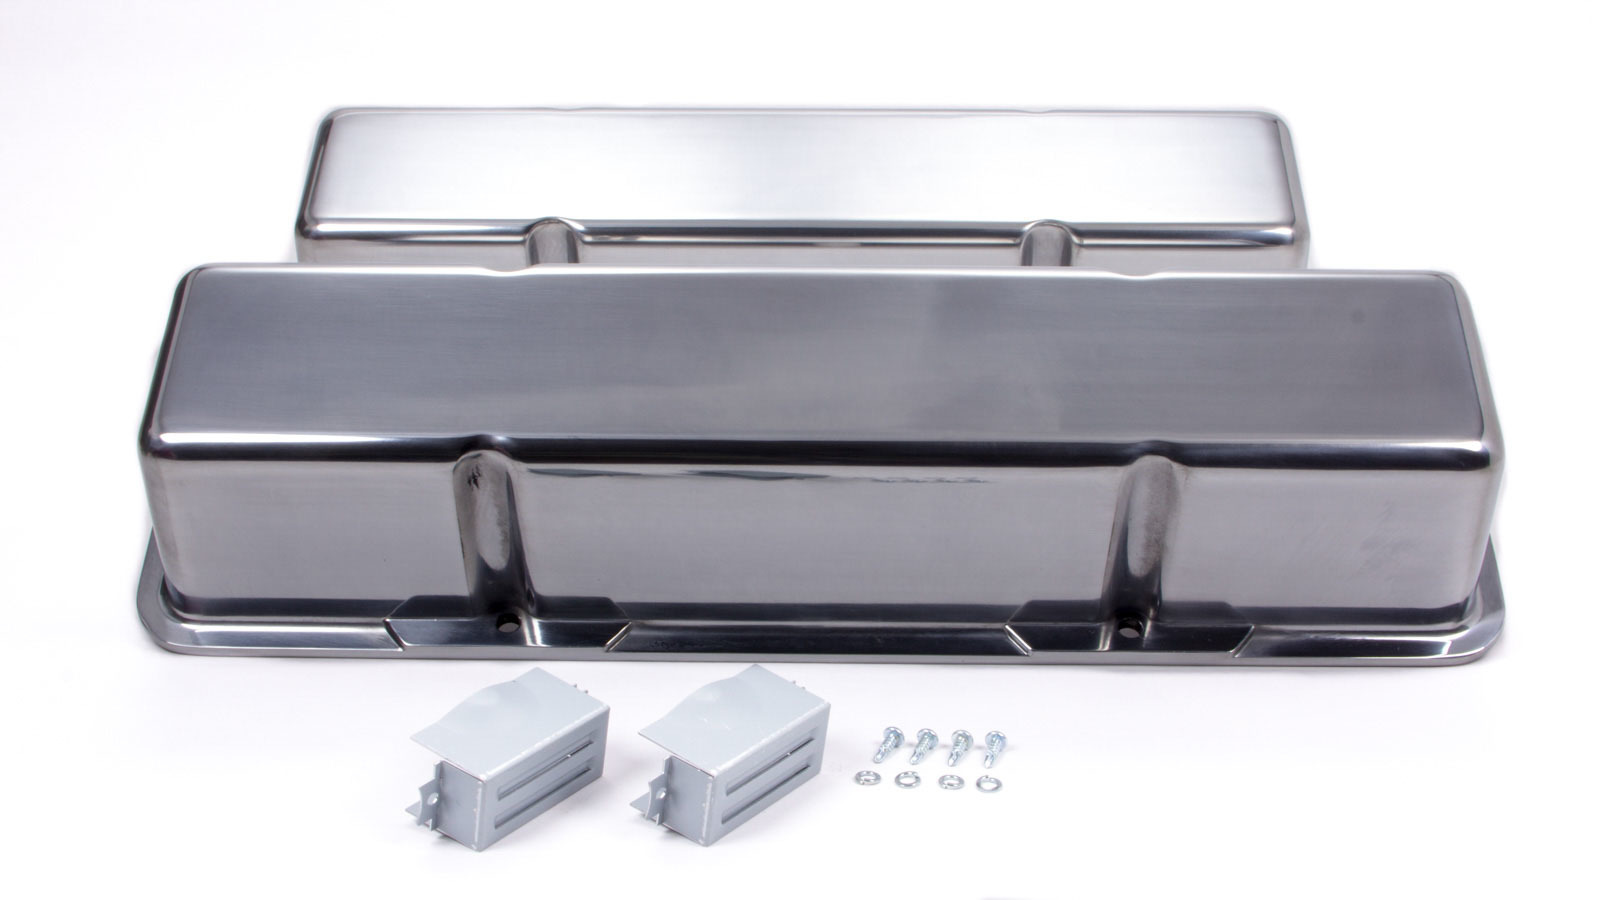 Racing Power Company R6030-1 Valve Cover, Tall, 3-11/16 in Height, Baffled, Grommets Included, Aluminum, Polished, Small Block Chevy, Pair